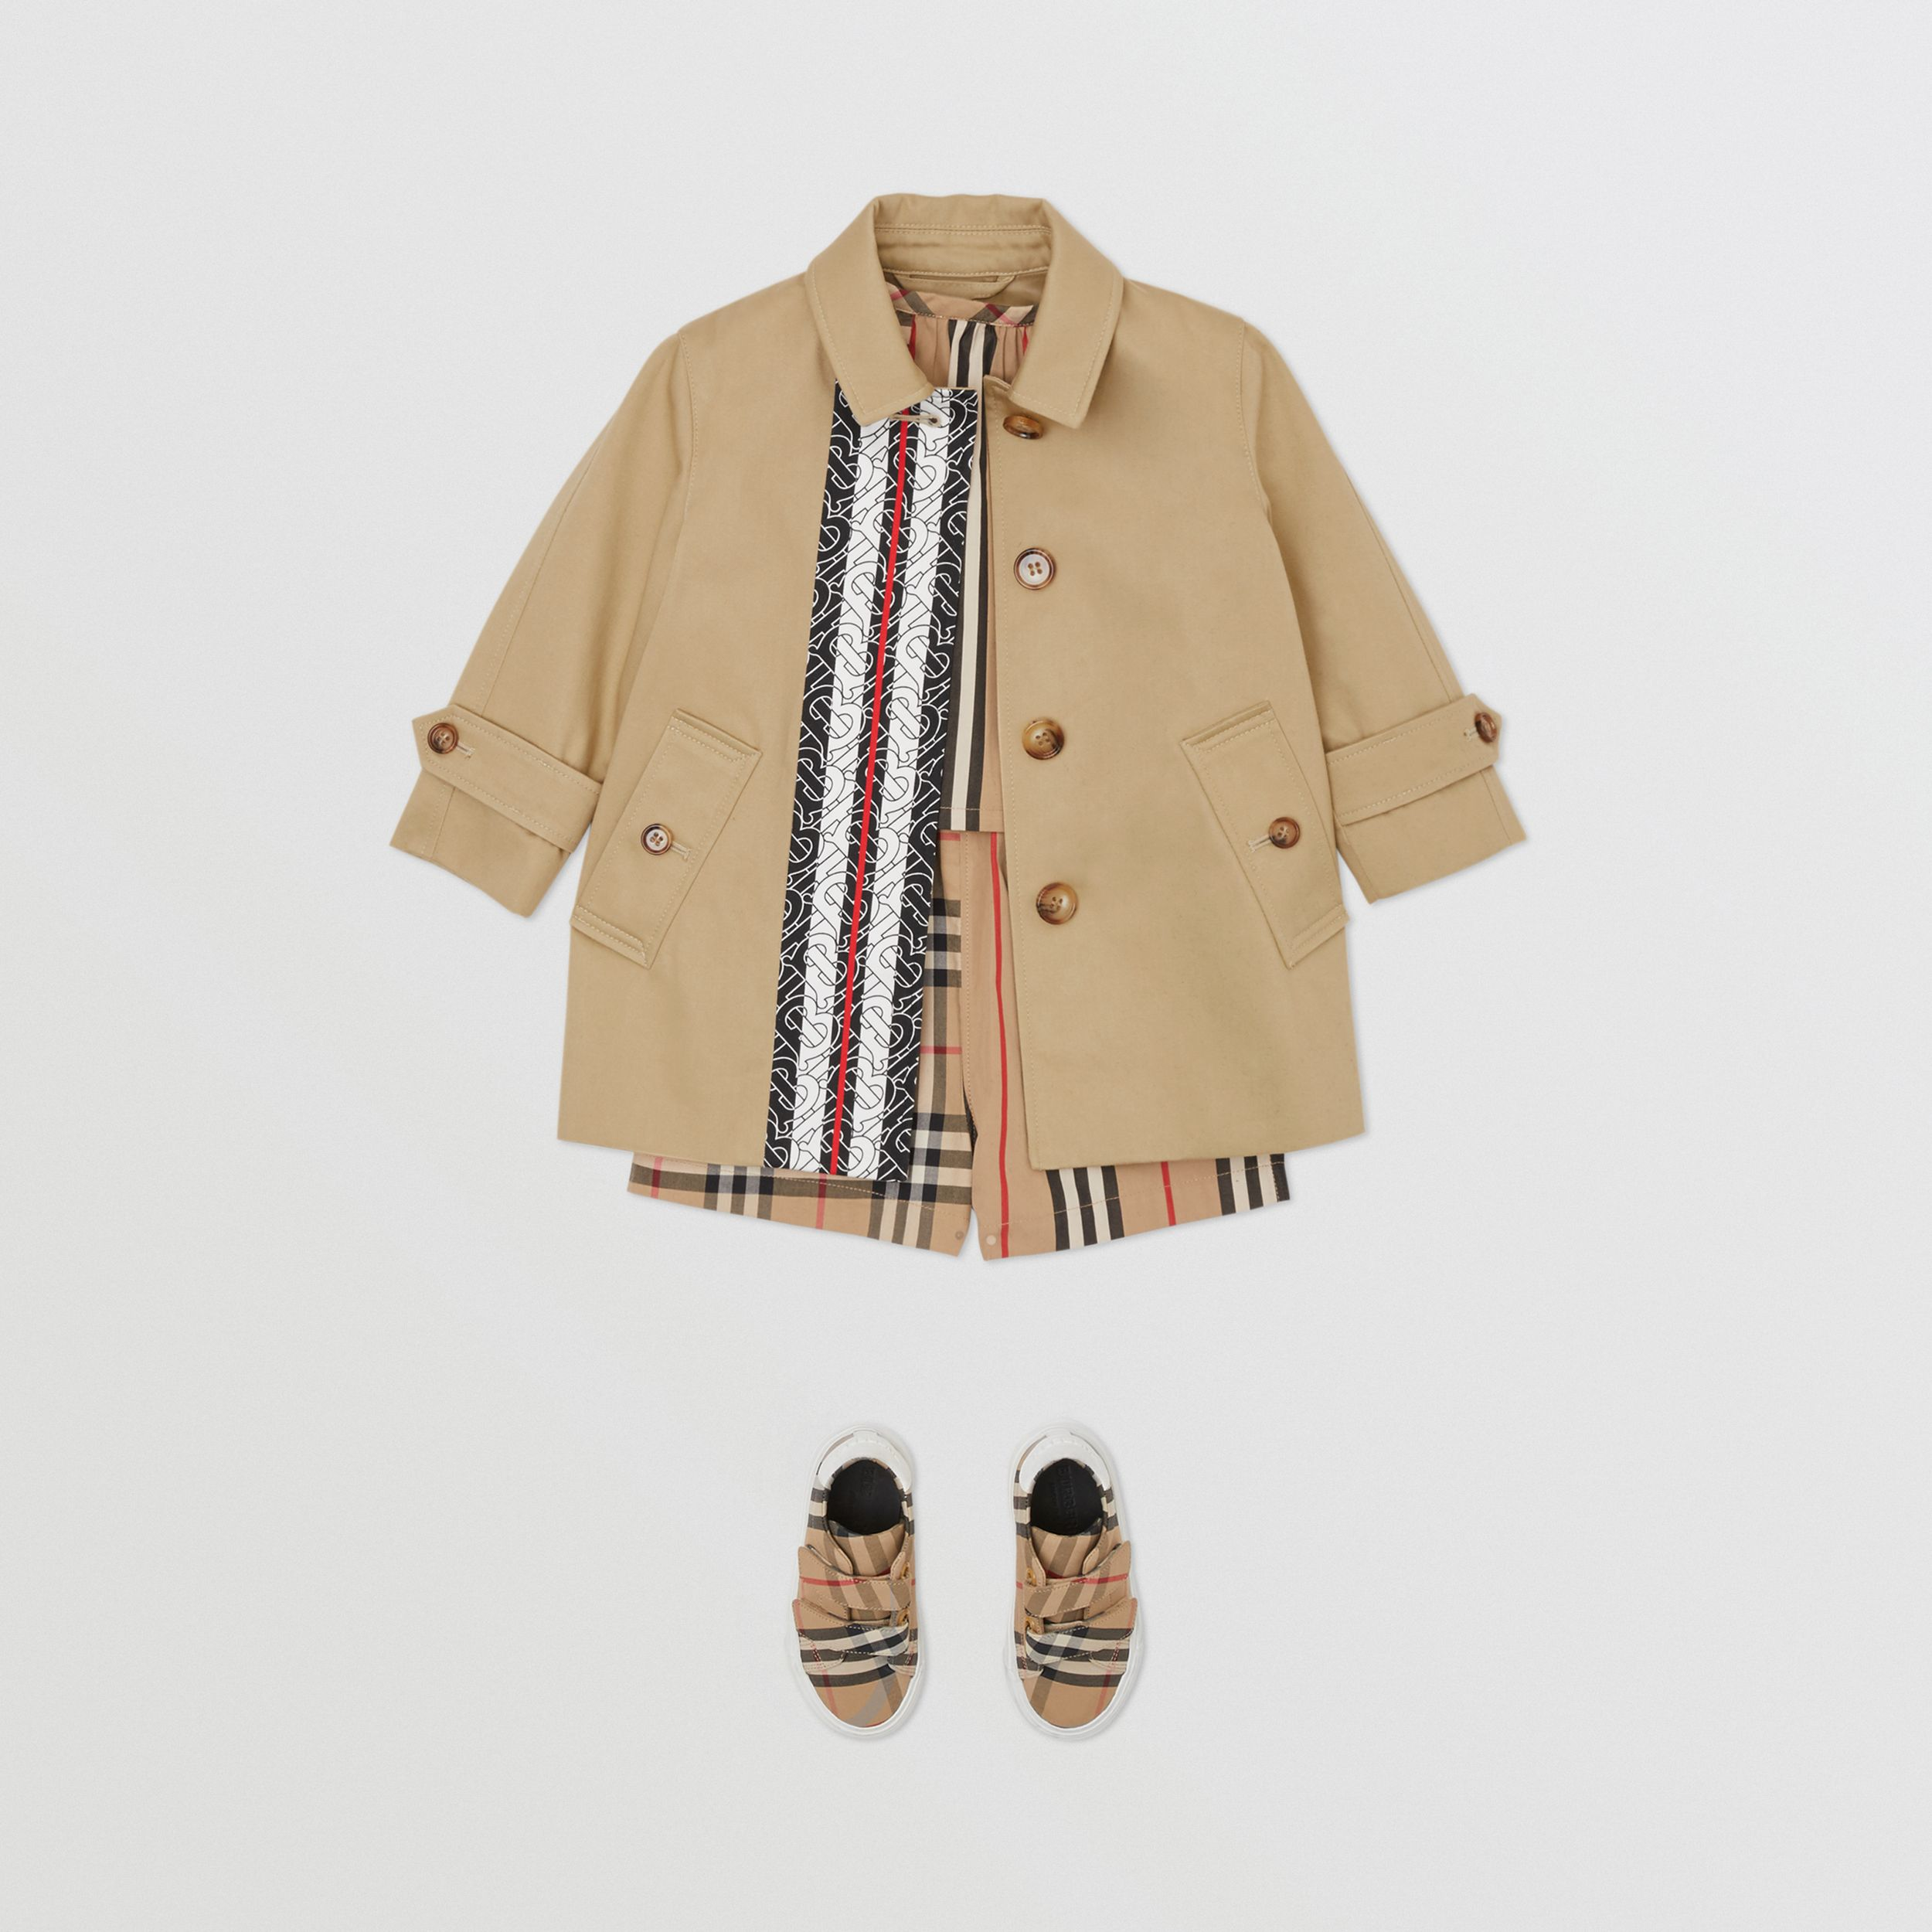 Monogram Stripe Print Cotton Car Coat in Honey - Children | Burberry Canada - 3